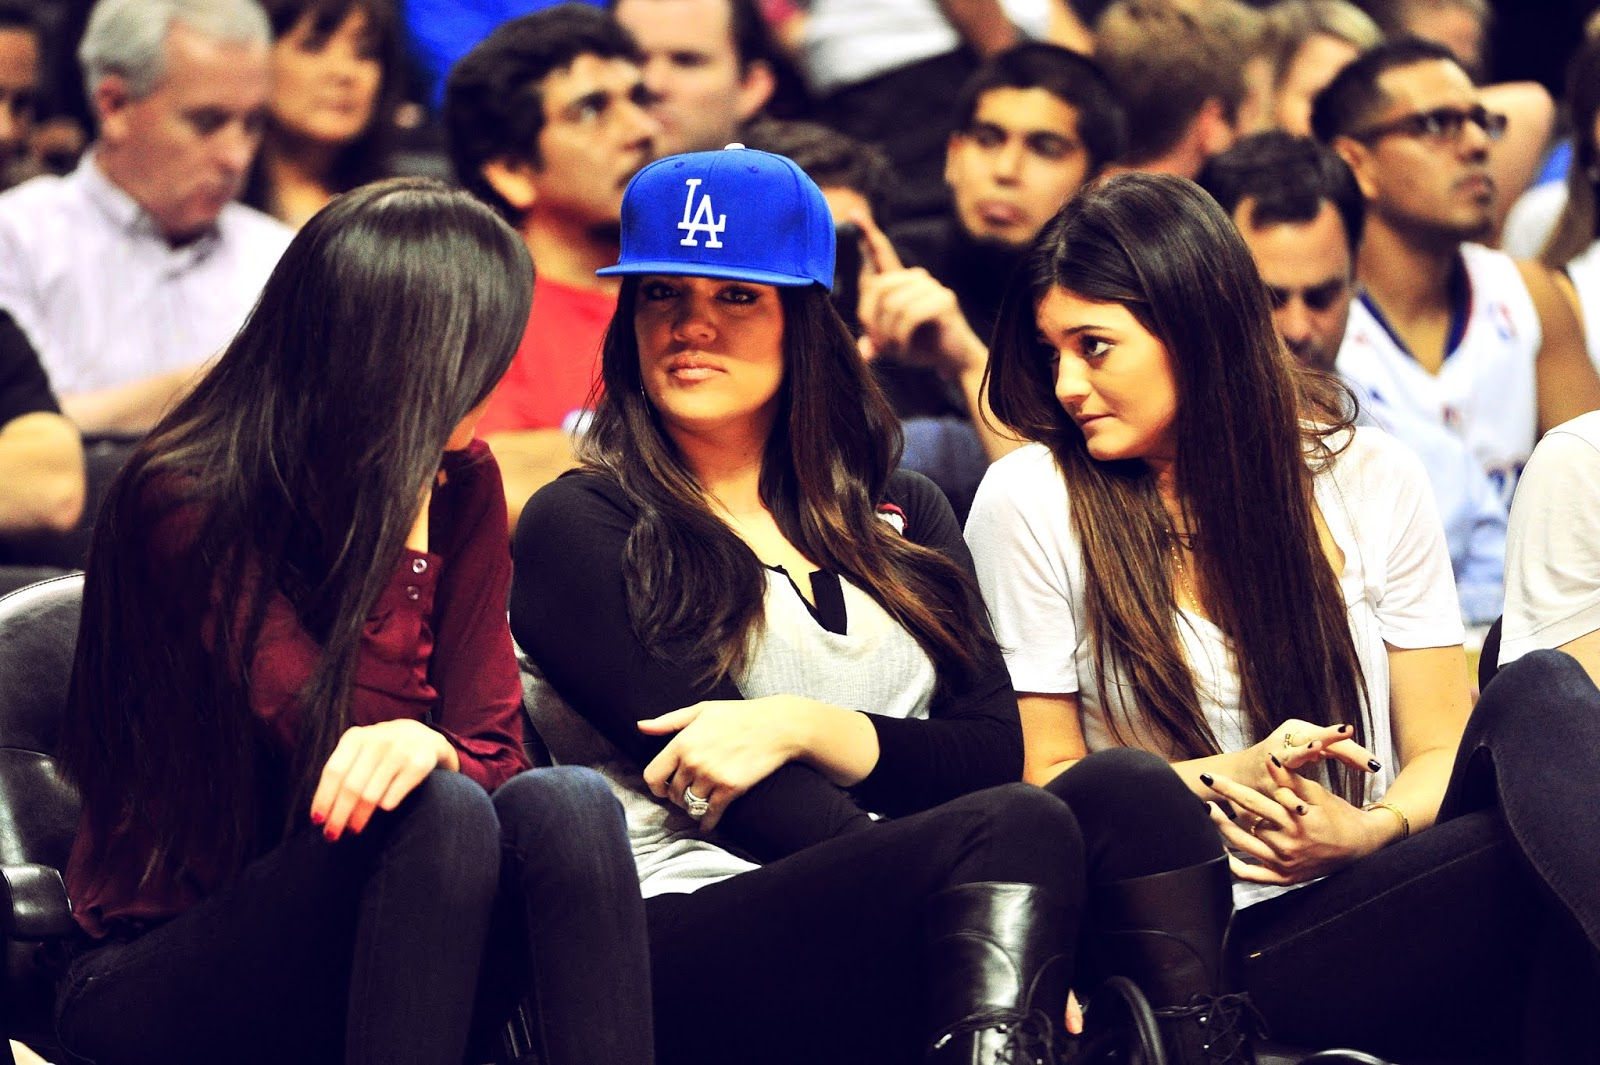 15 - Watching The Los Angeles Clippers Game on October 17, 2012